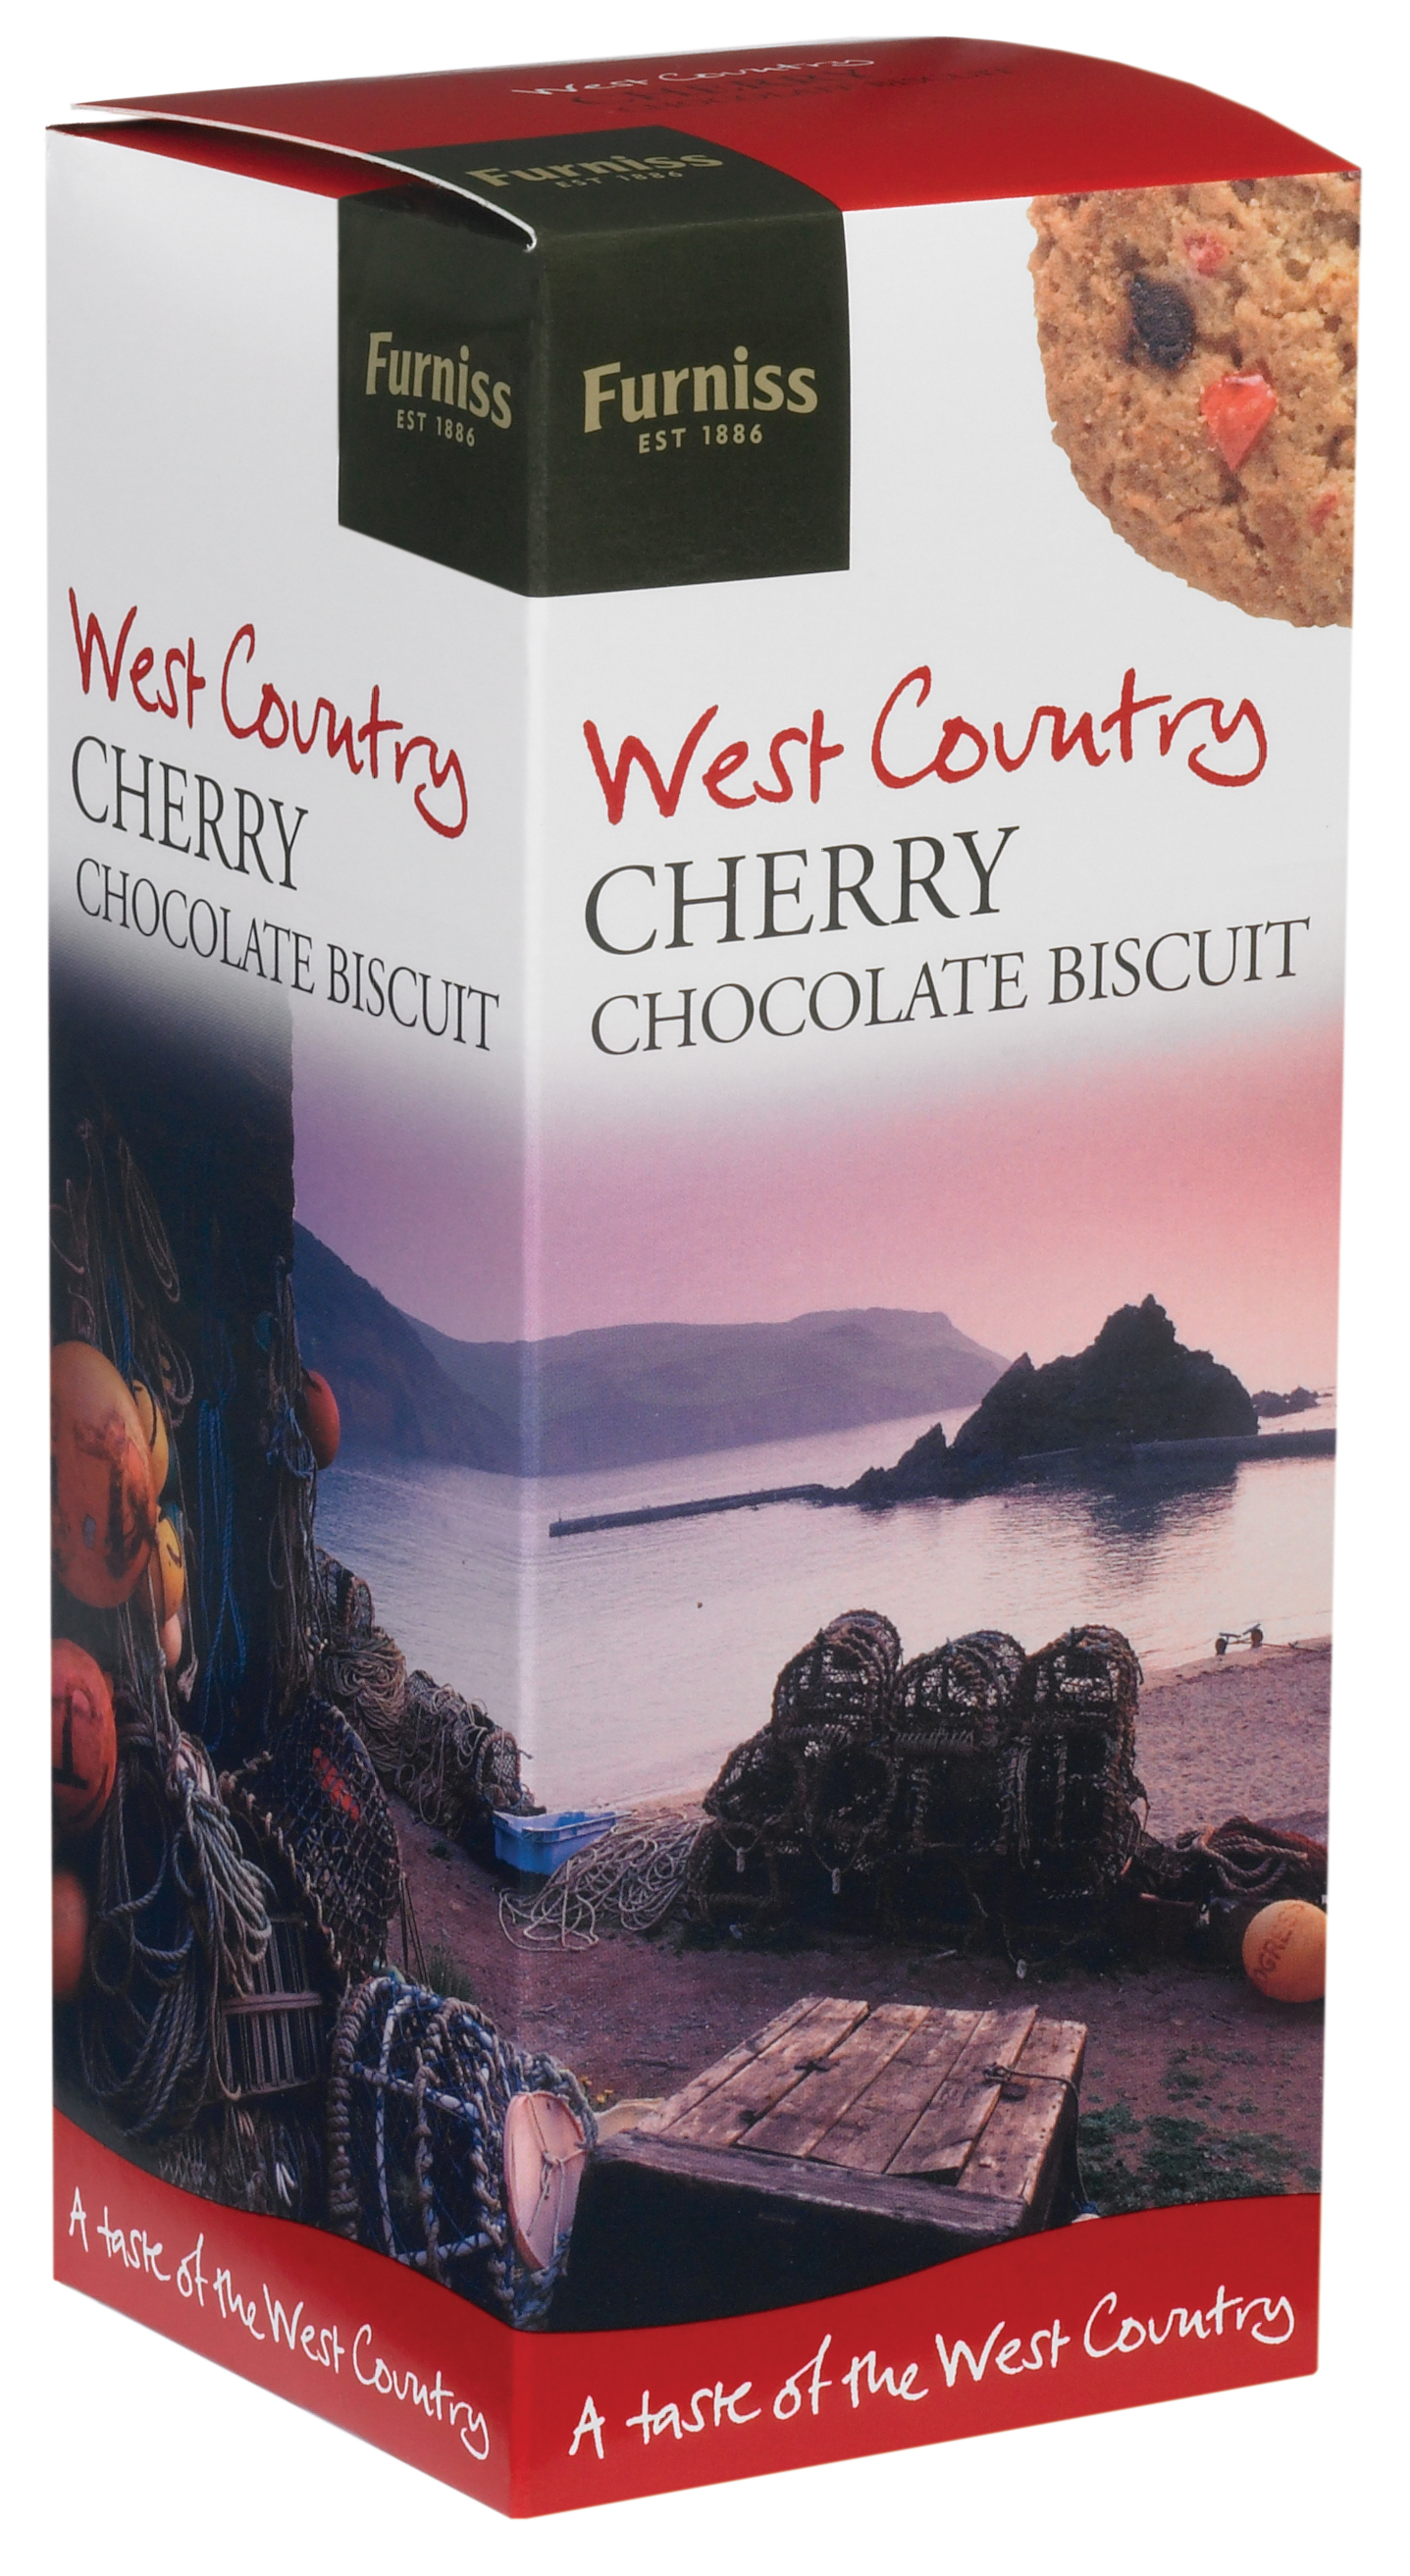 Furniss 200g Cherry Chocolate Biscuits